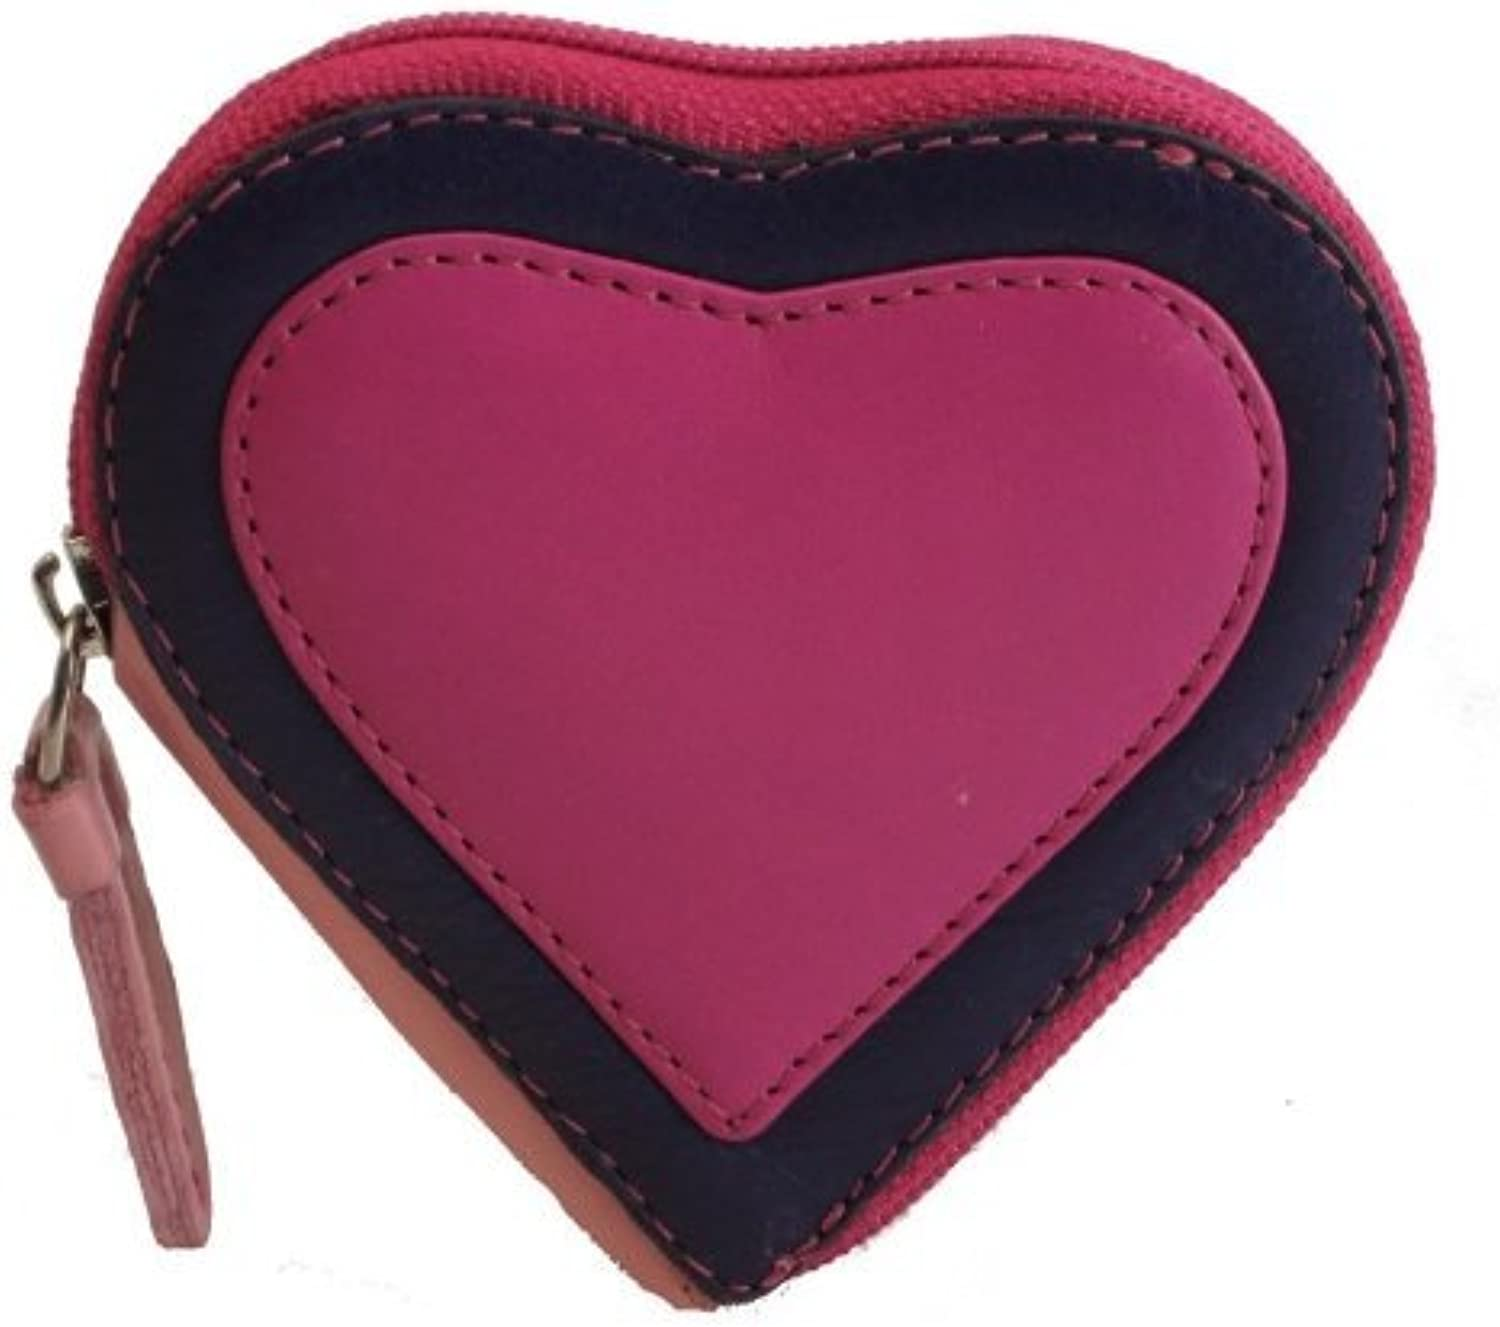 Visconti Capri RB59 Heart Shaped Leather Coin Purse Key Wallet With Key Chain (Berry)